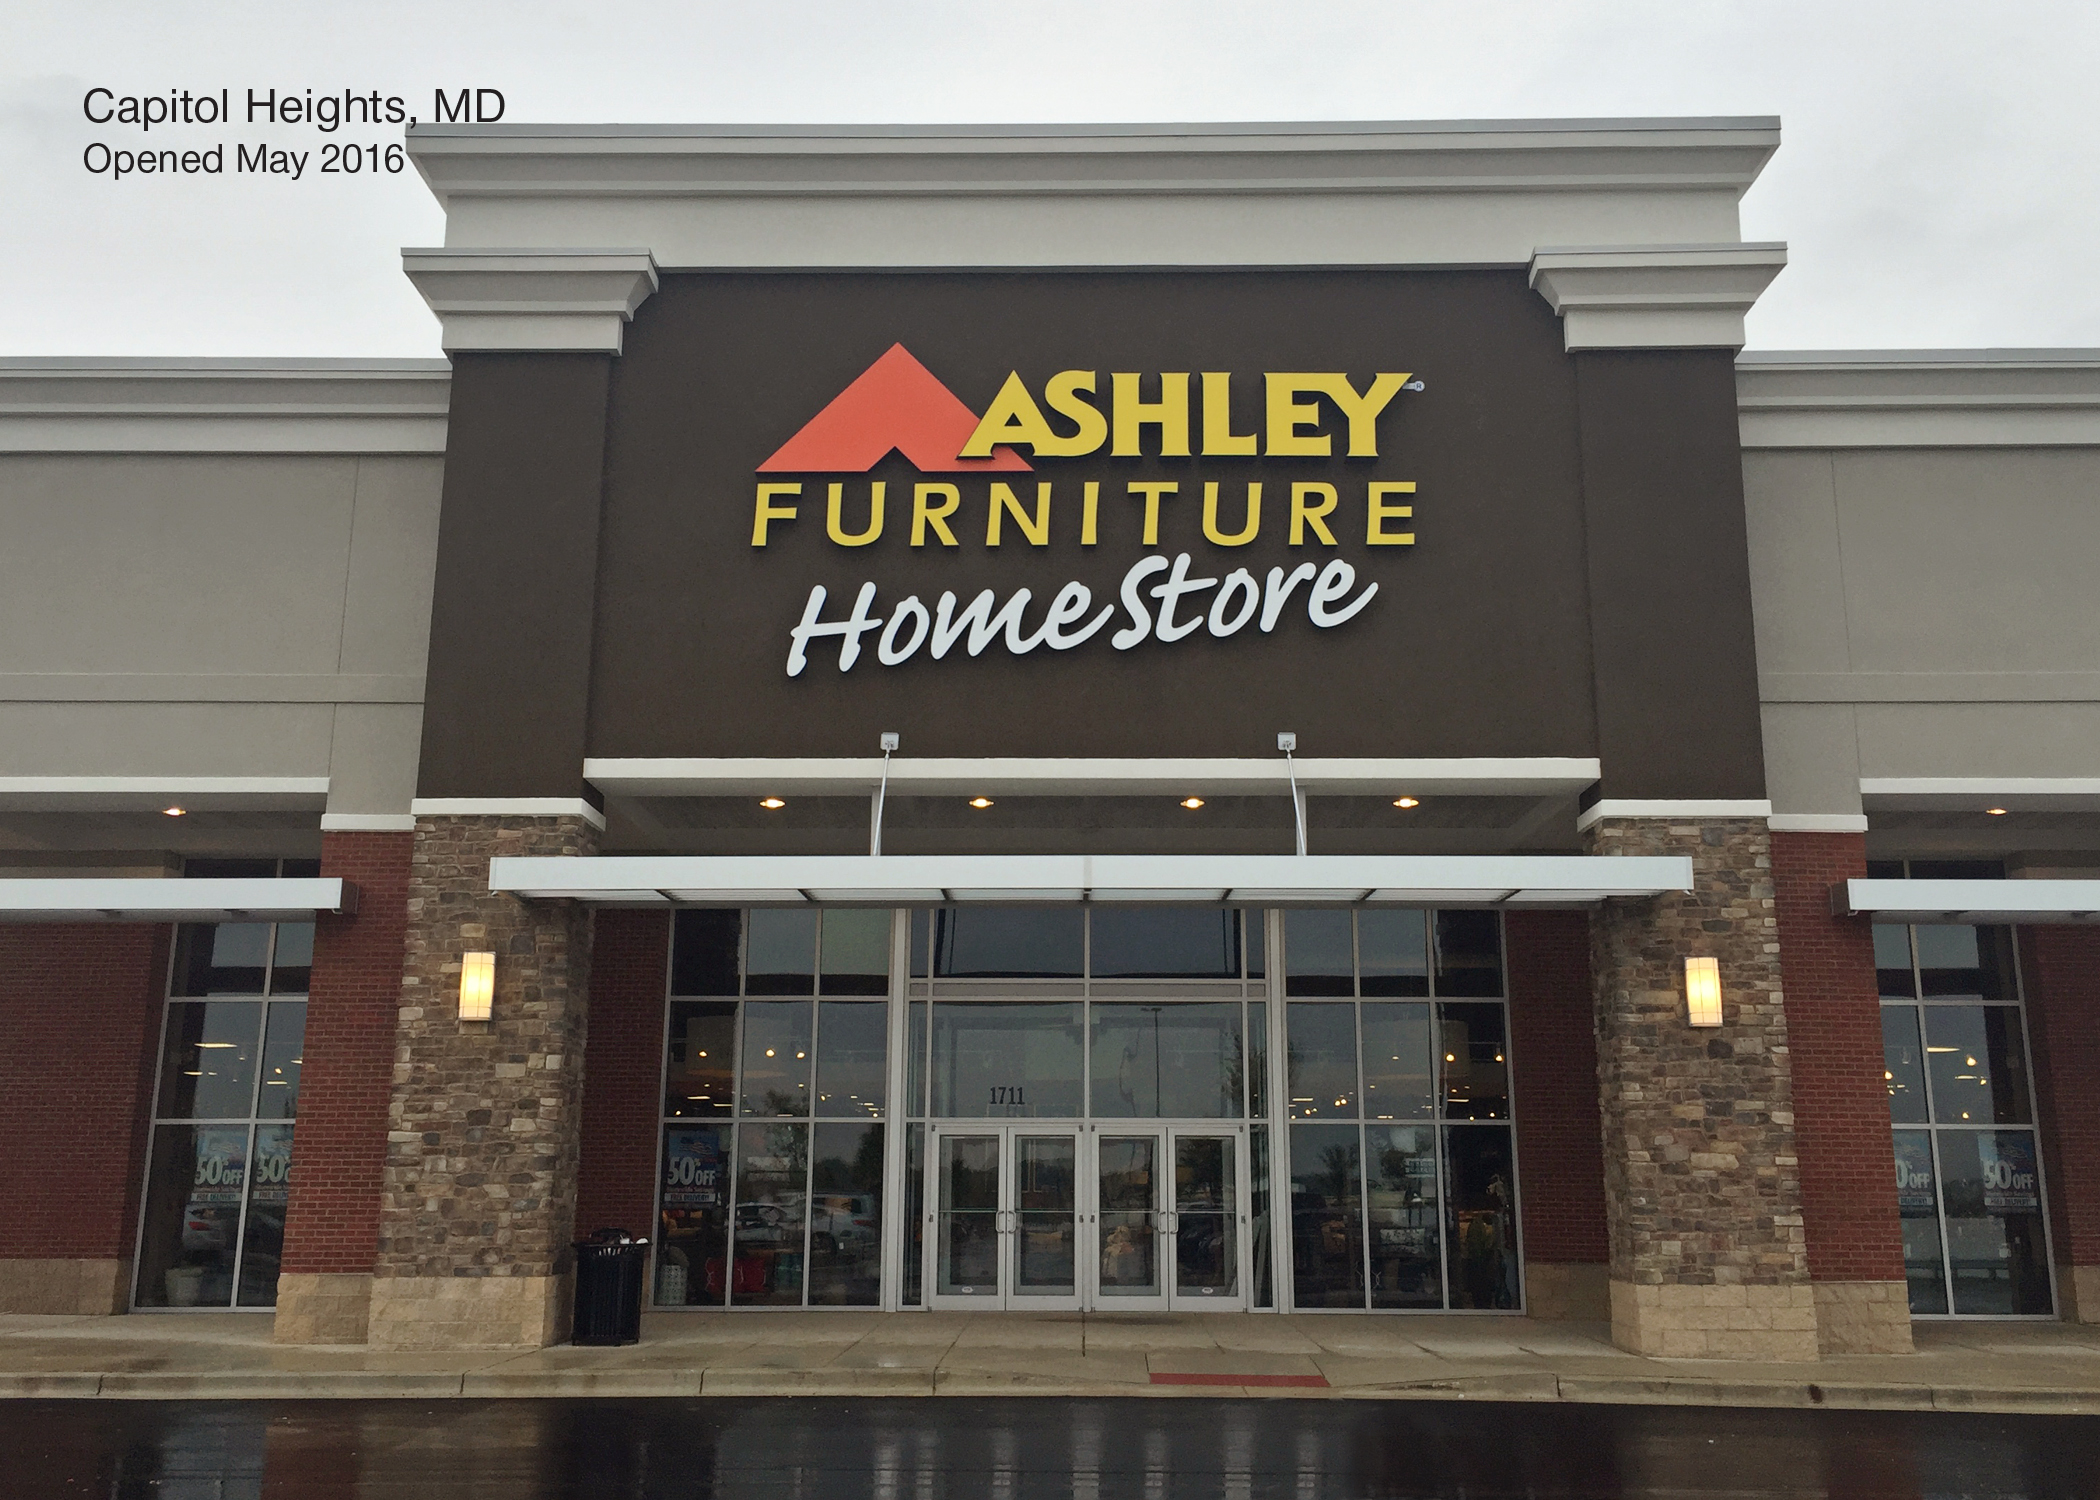 Furniture And Mattress Store In Capitol Heights MD